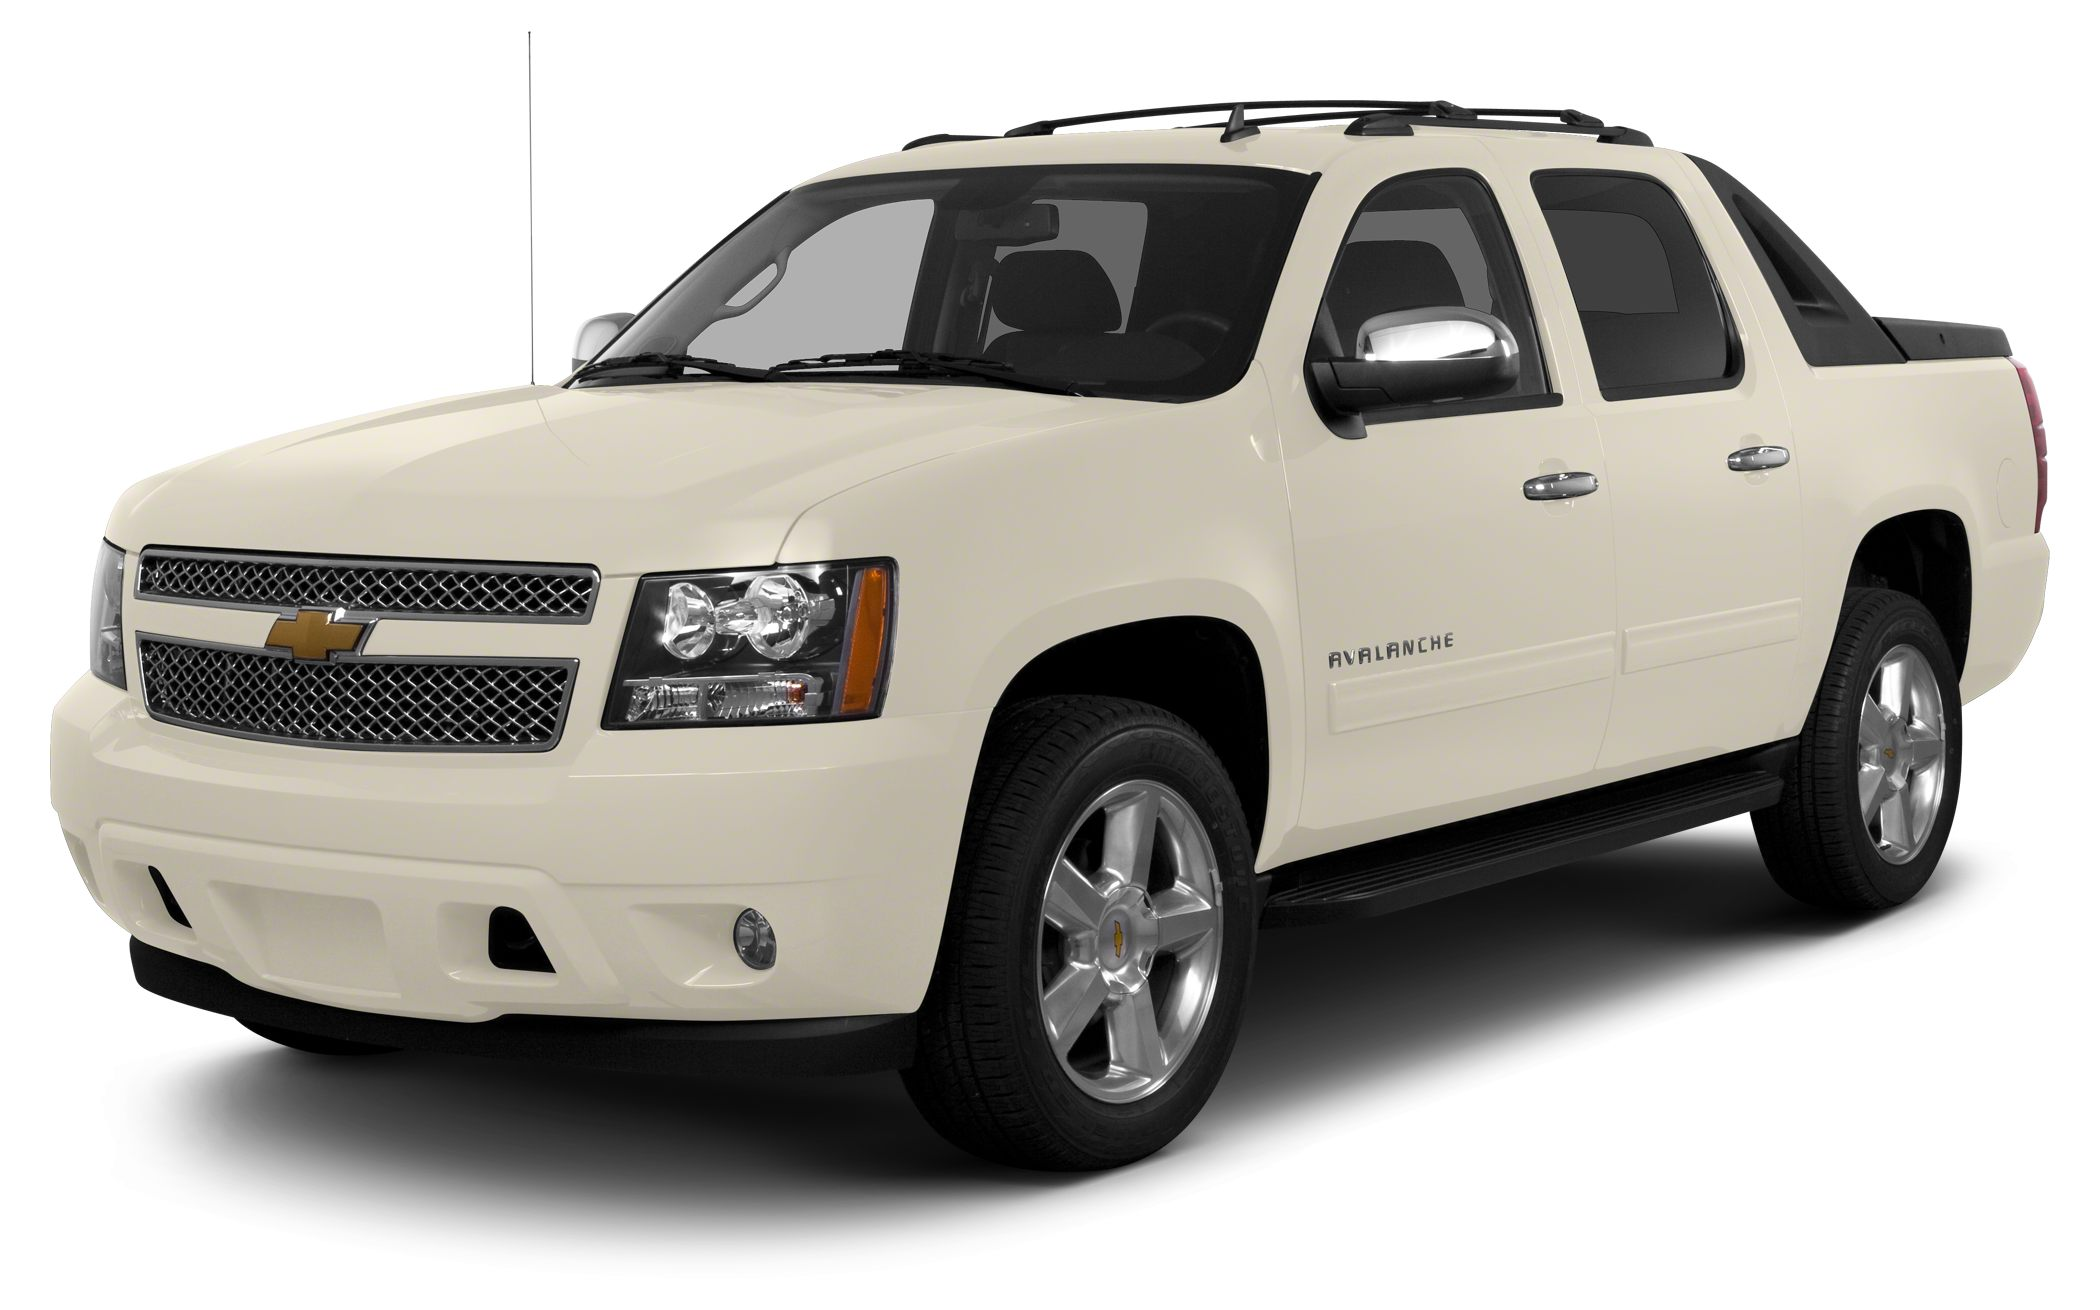 2013 Chevrolet Avalanche LTZ LTZ BLACK DIAMOND EDITION 4X4 53L V8 SUNROOF HEATED  COOLED LEATH